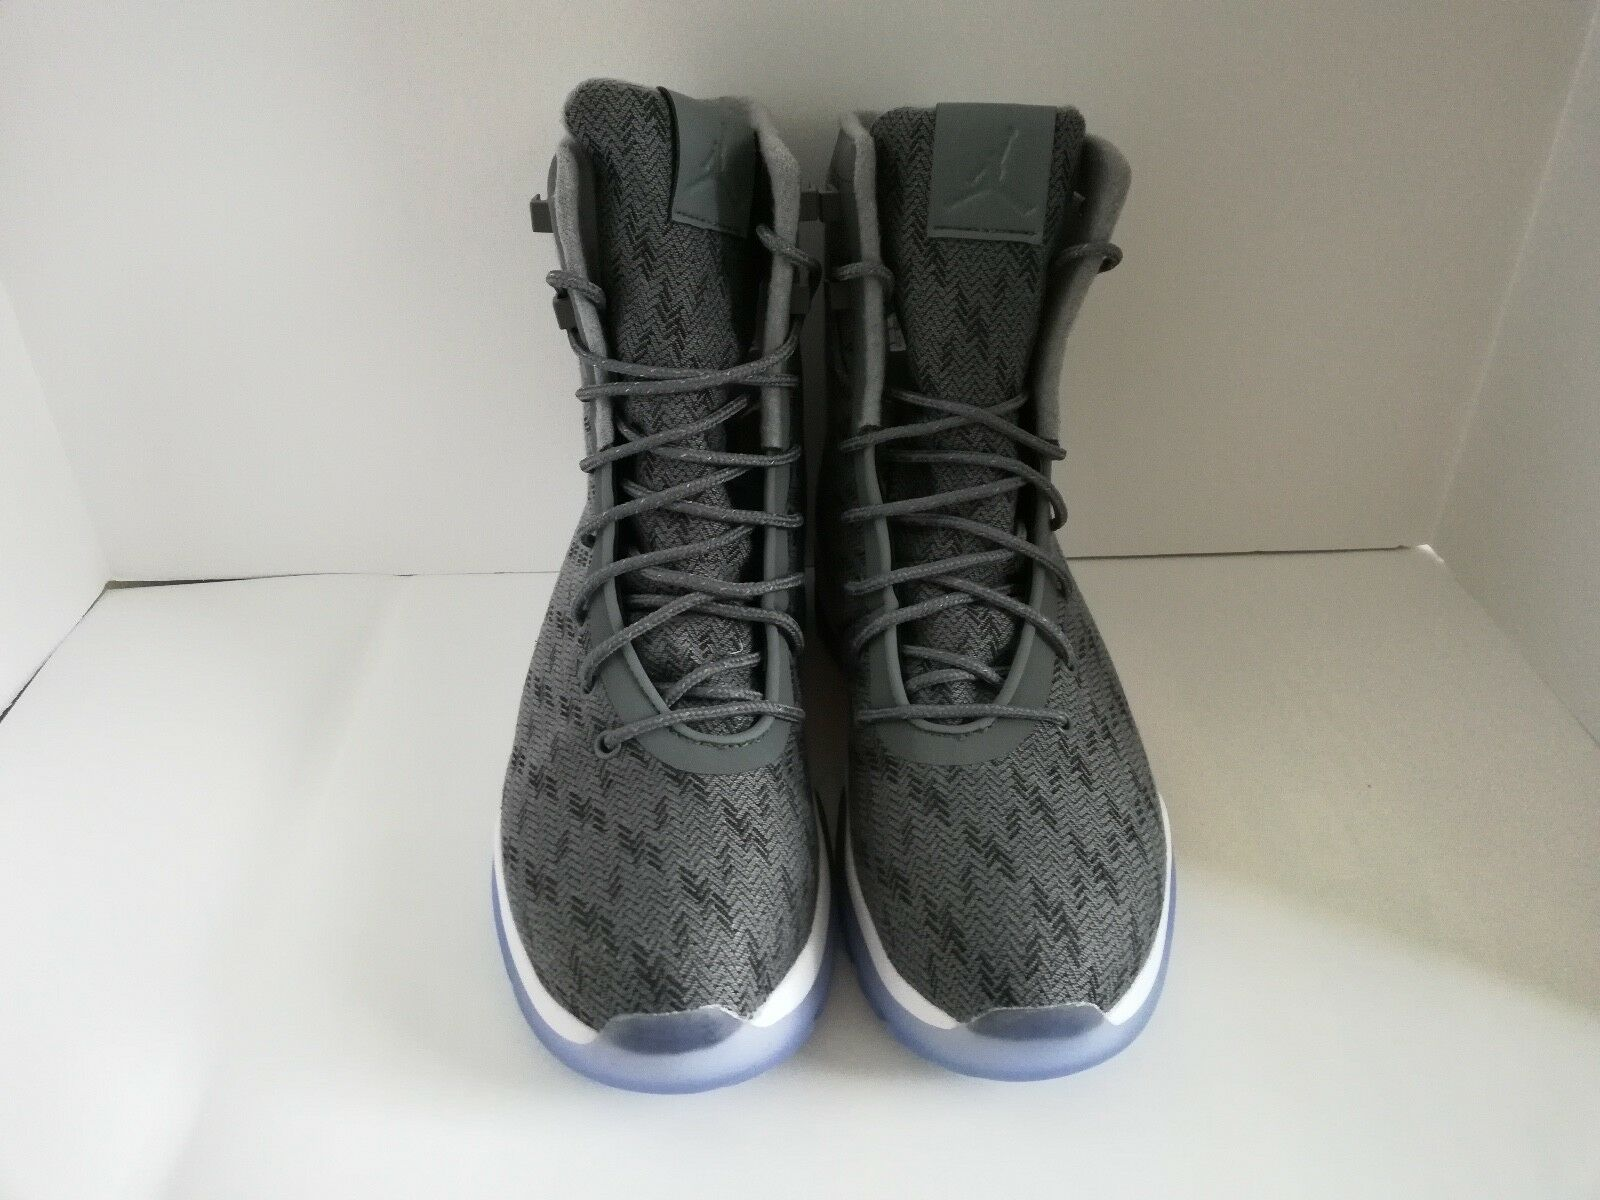 Air Jordan Future Boots Cool/Grey/White 854554-003 Comfortable The latest discount shoes for men and women